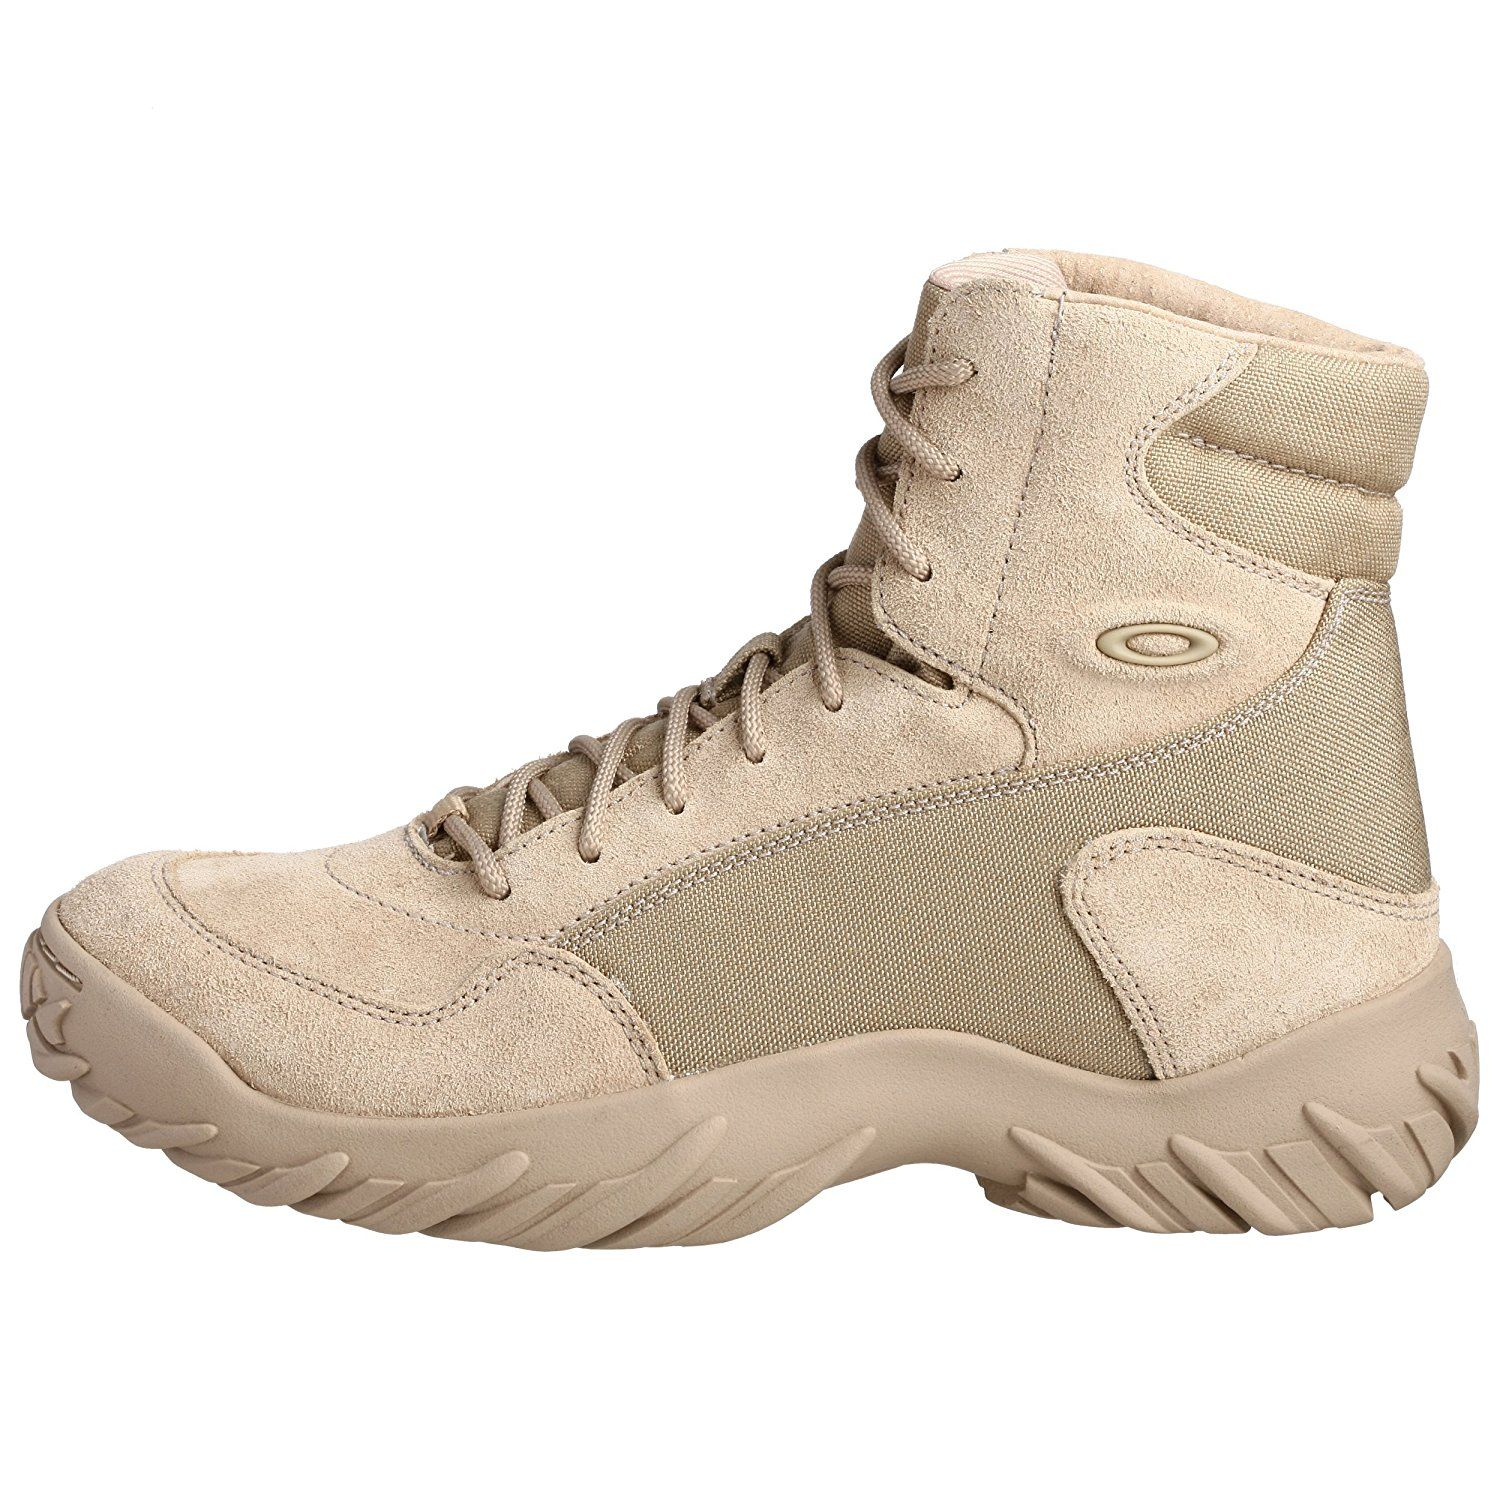 3eb9a1c7945070 Oakley Men s SI Assault 6  Hiking Boot    Details can be found by clicking  on the image. (This is an affiliate link)  HikingBoots